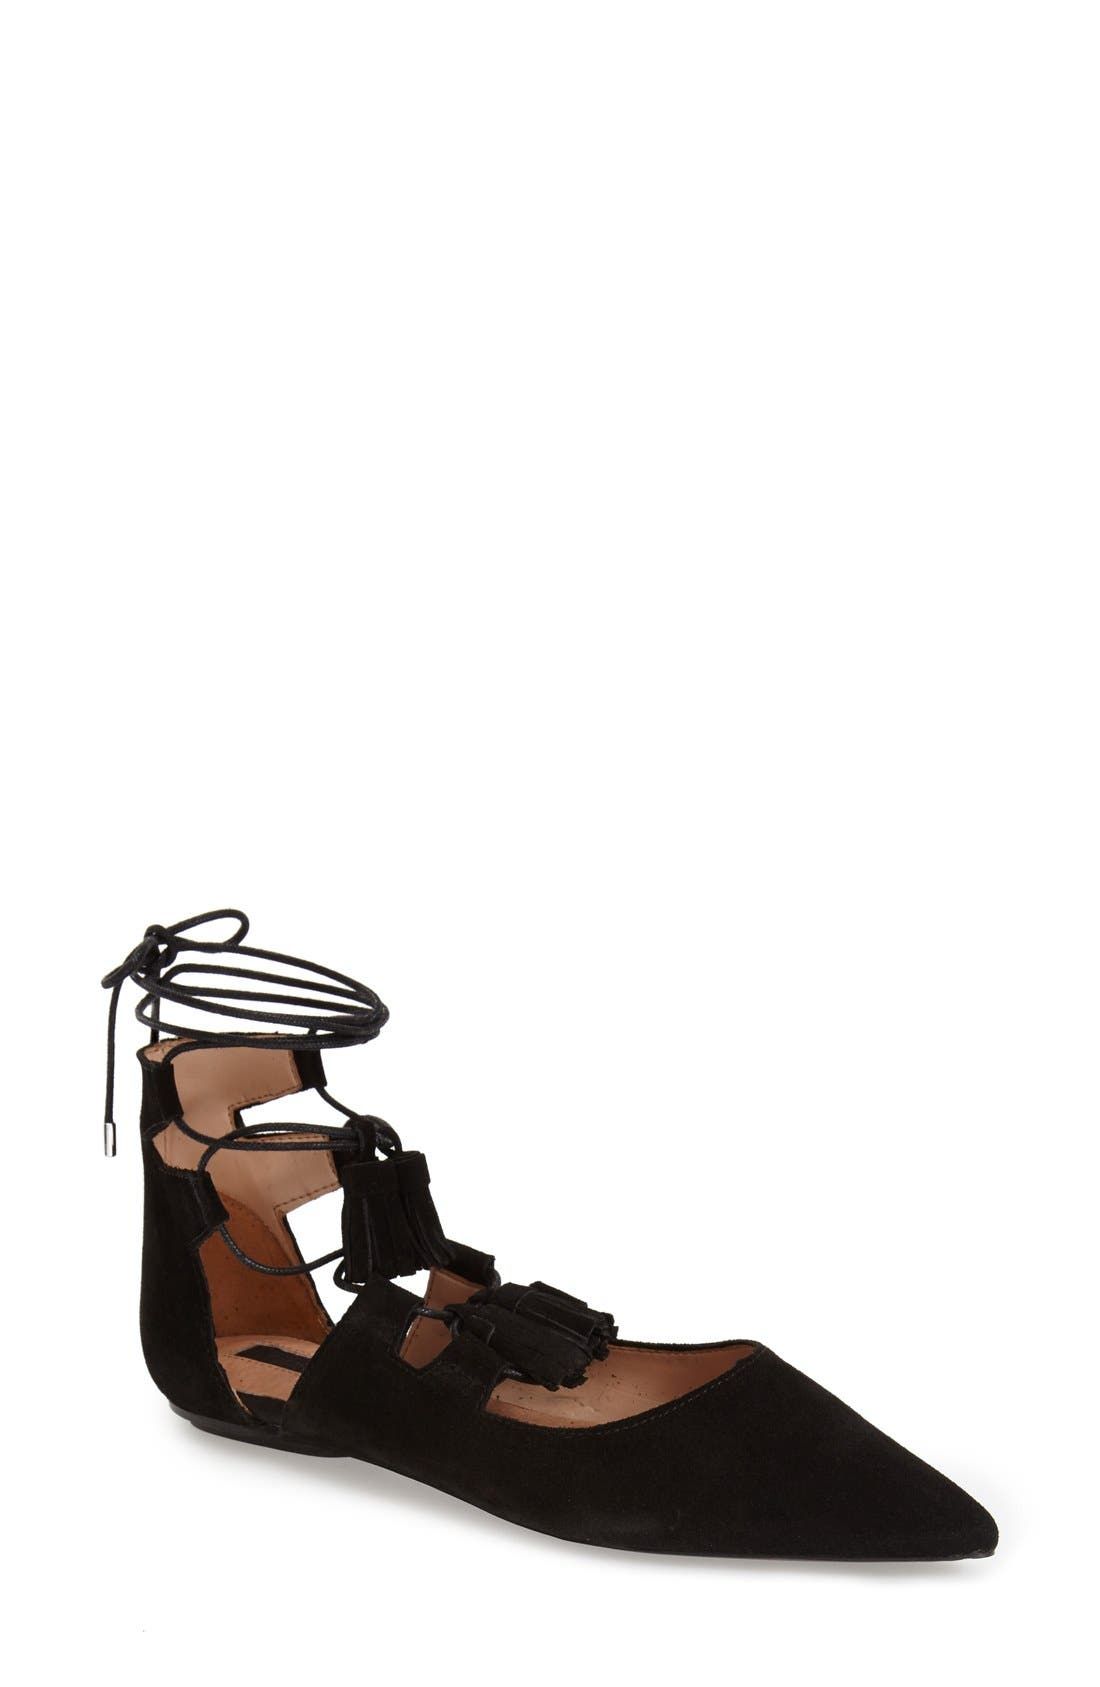 Alternate Image 1 Selected - Topshop'Leather Kiss' Pointy Toe GhillieFlat (Women)